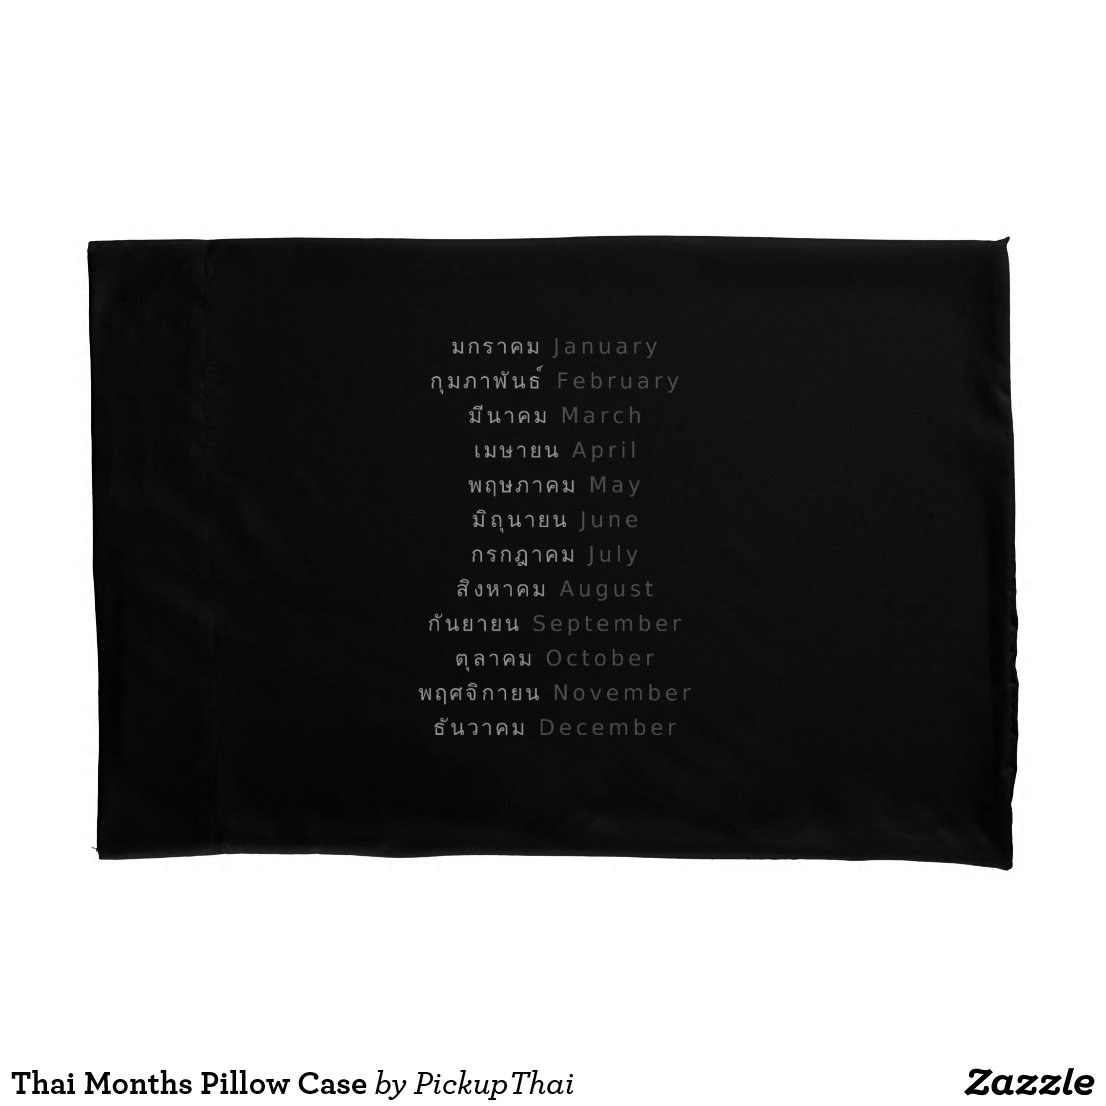 Thai Months Pillow Case